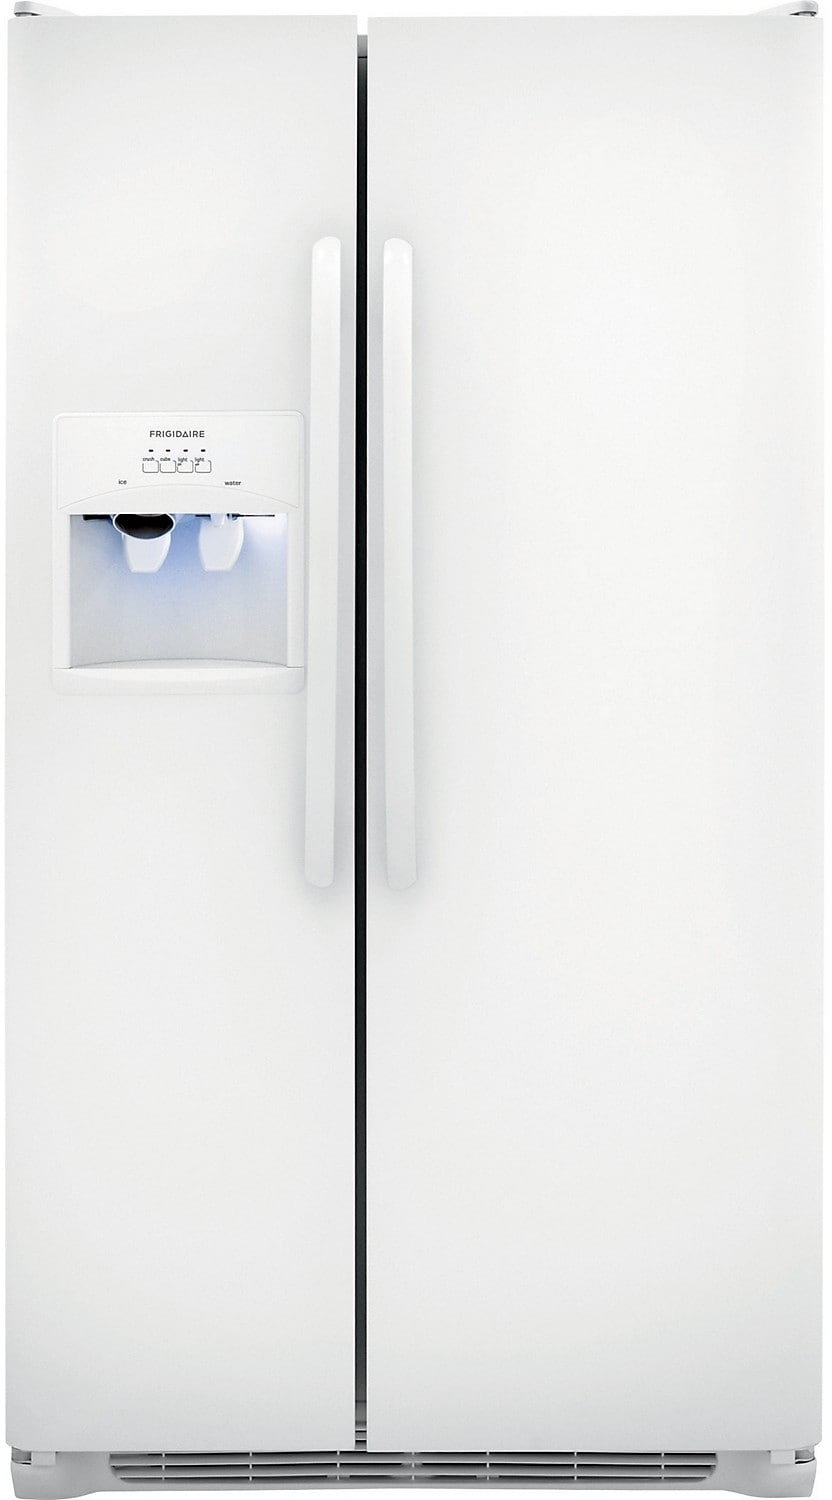 Refrigerators and Freezers - Frigidaire 22.6 Cu. Ft. Side-by-Side Refrigerator - White